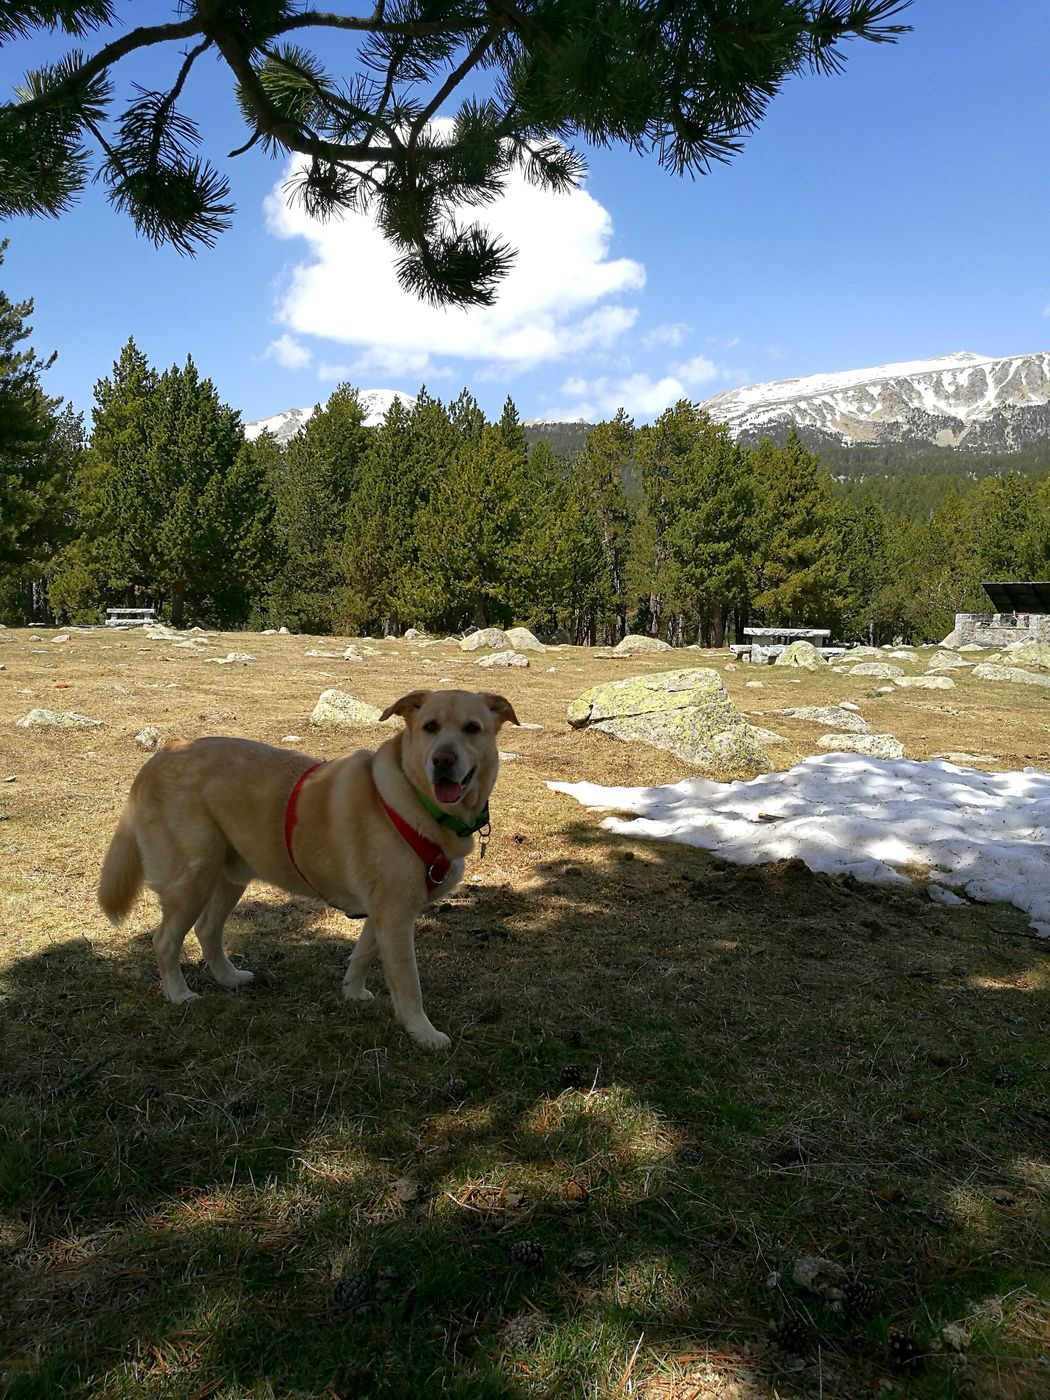 MY lovely dog in Lles, Cerdanya (the Catalan Pyrenees). His first time in snow. Dog Pets Domestic AnimalsOne Animal Animal Themes Outdoors Nature Day Lovely Happy Snow First Time Seeing Snow! No People Adorable Dog